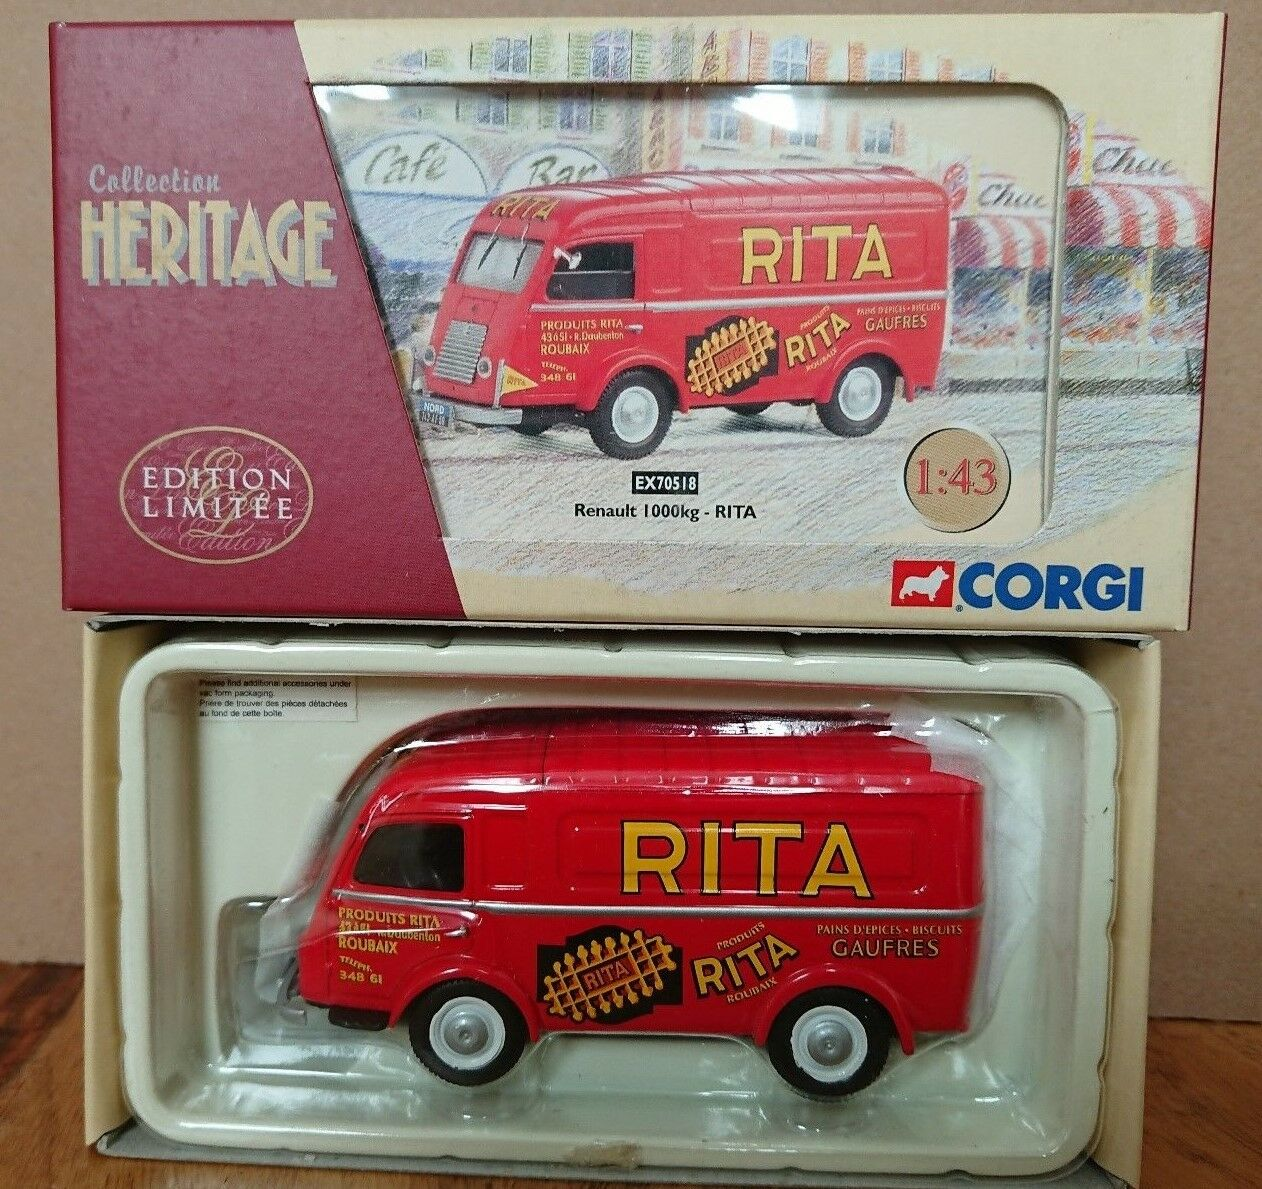 Corgi EX70518 Renault 1000kg RITA Ltd Edition No. 0002 of 2800